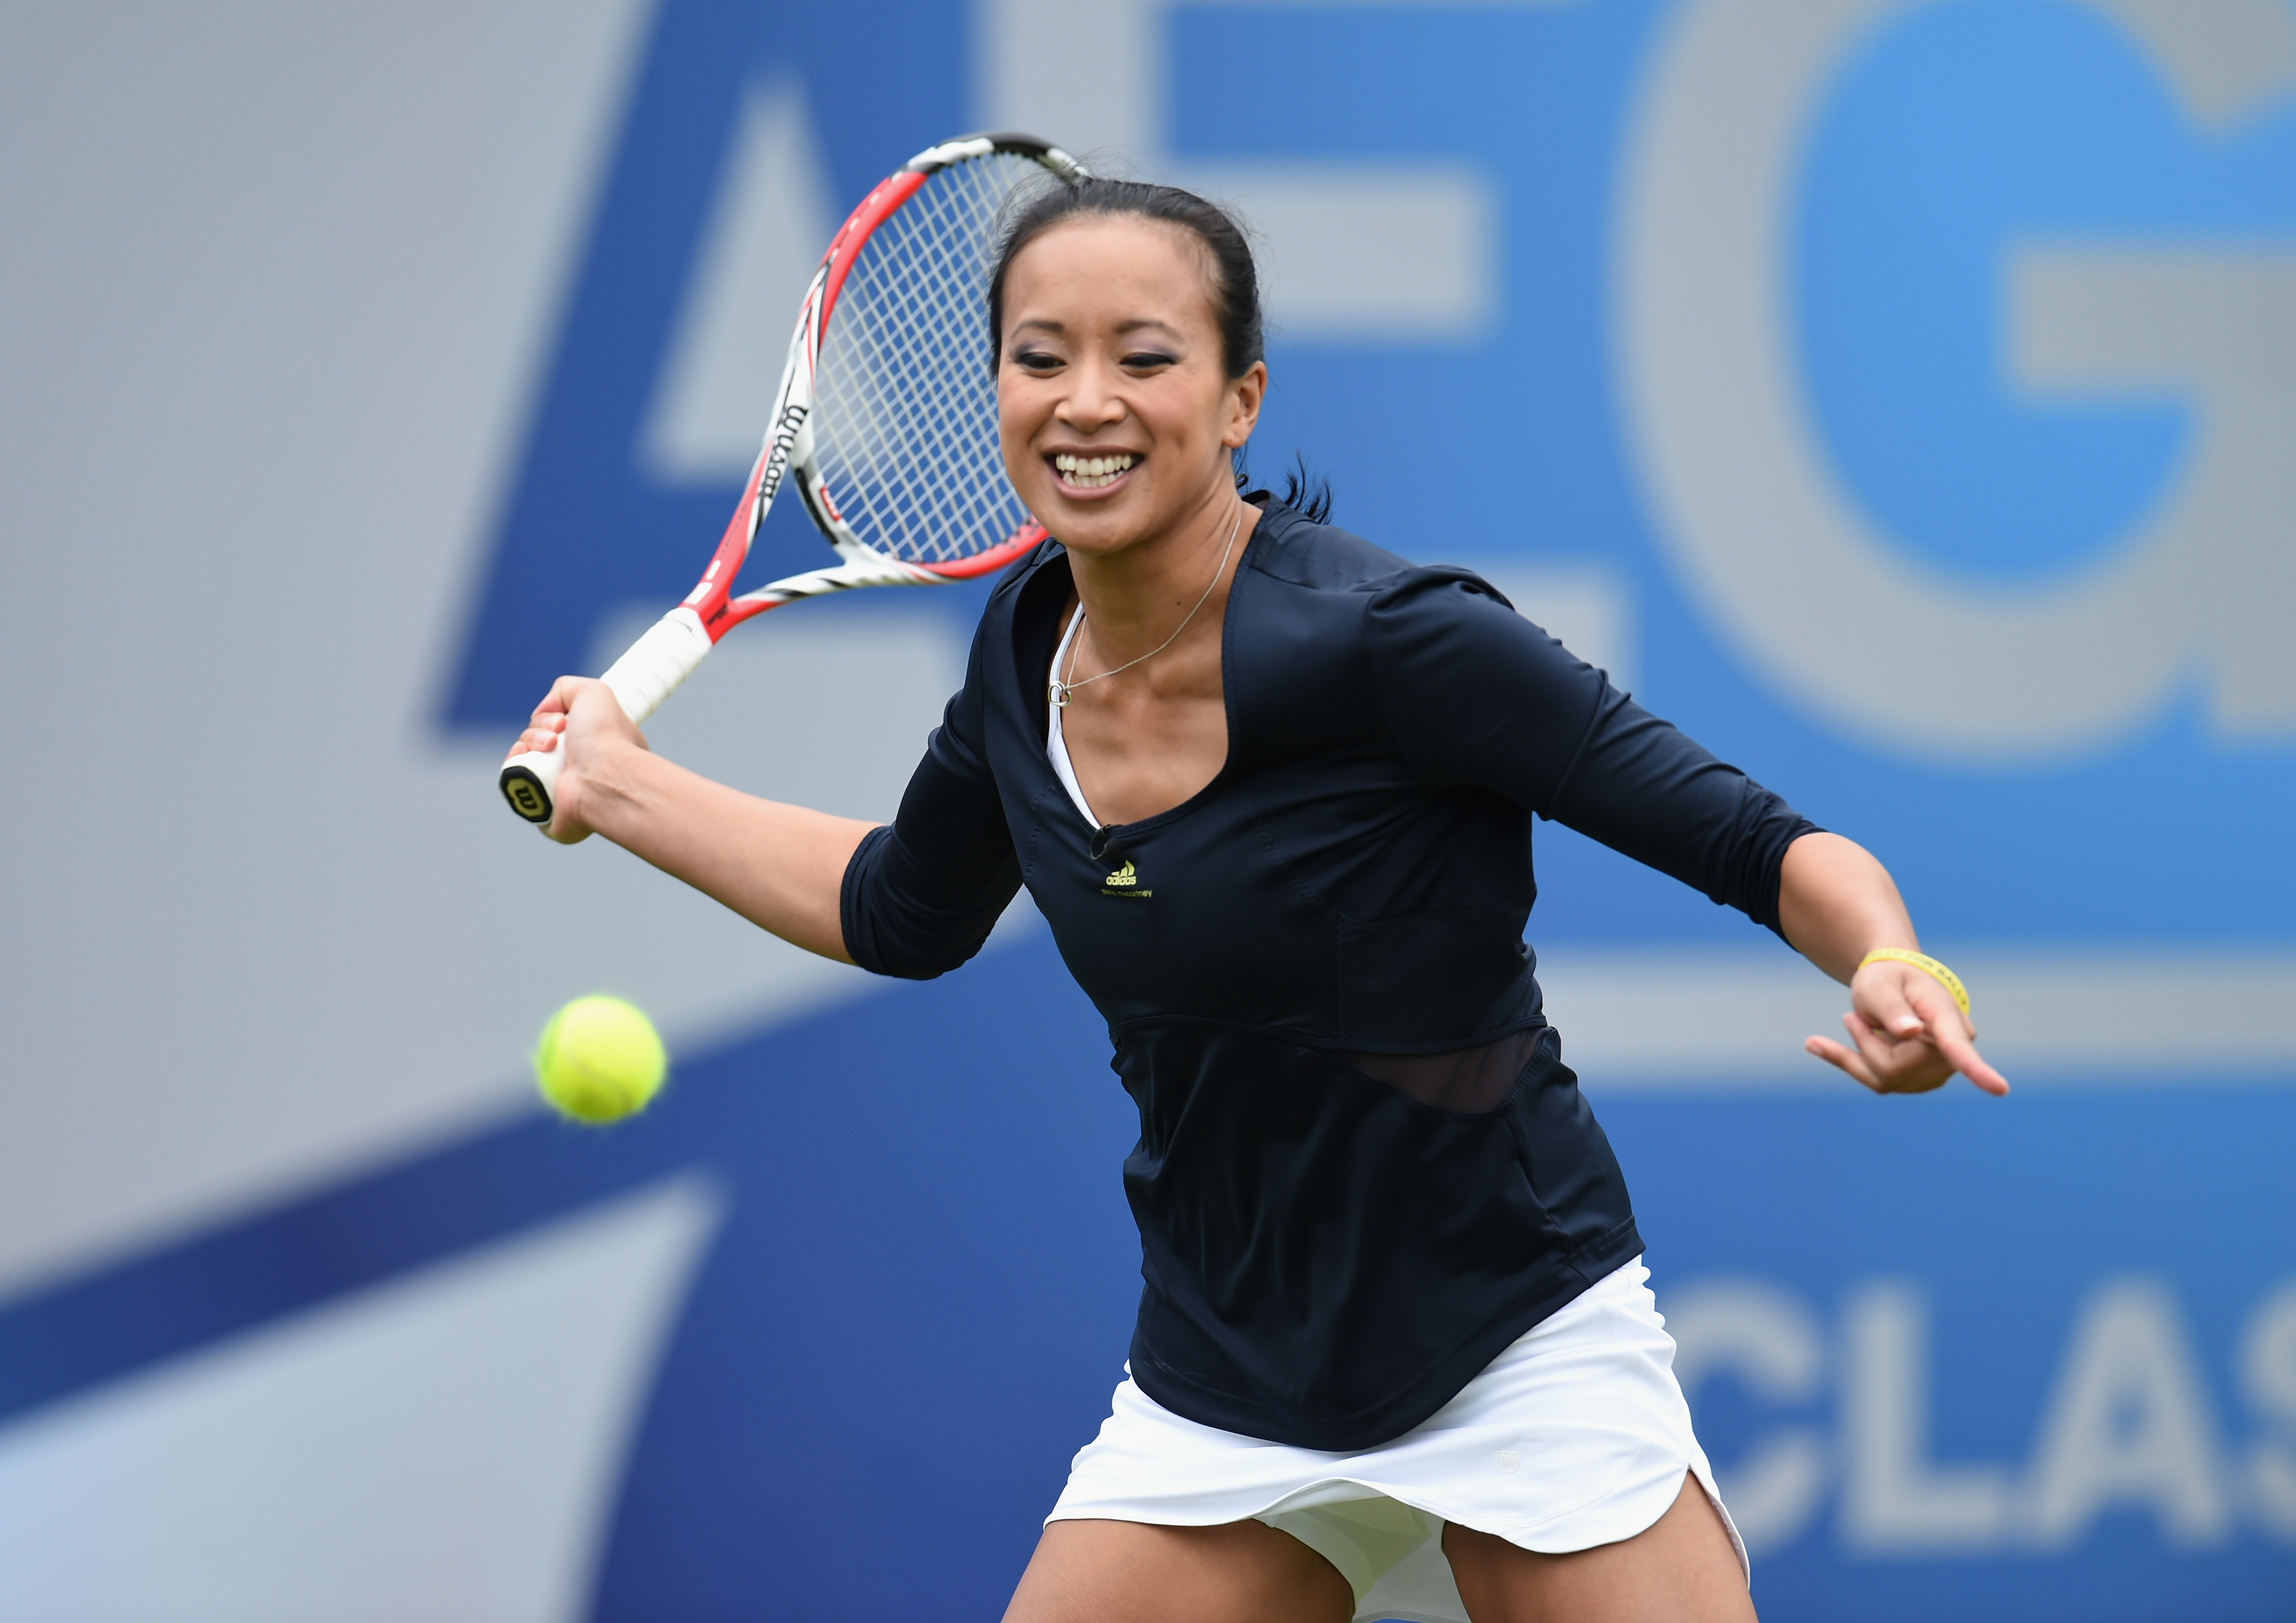 Former British No. 1 Anne Keothavong succeeds Judy Murray as Great Britain Fed Cup captain